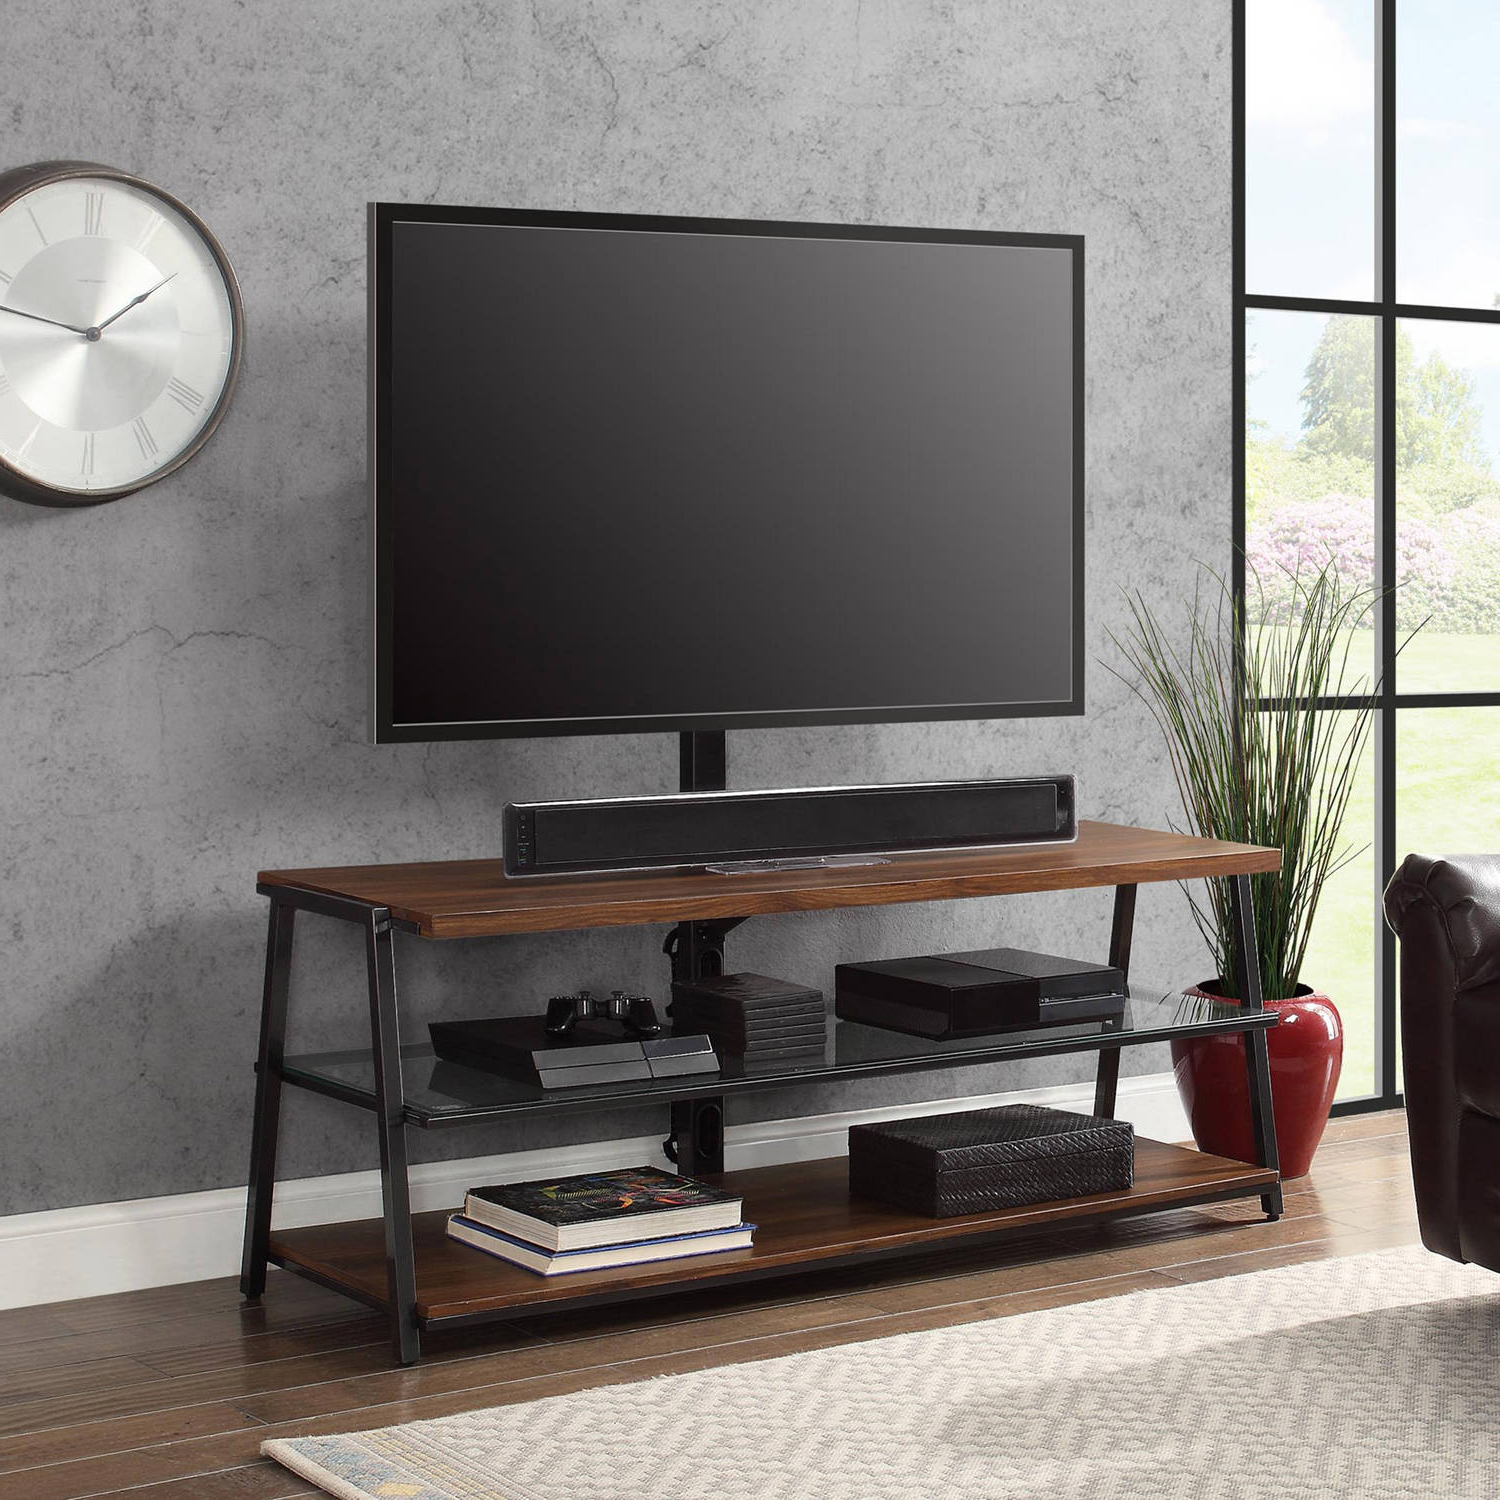 3 In 1 Tv Stand 70 Inch Flat Screen Entertainment Media Home Center Regarding 2017 Tv Stands For 70 Flat Screen (View 2 of 20)